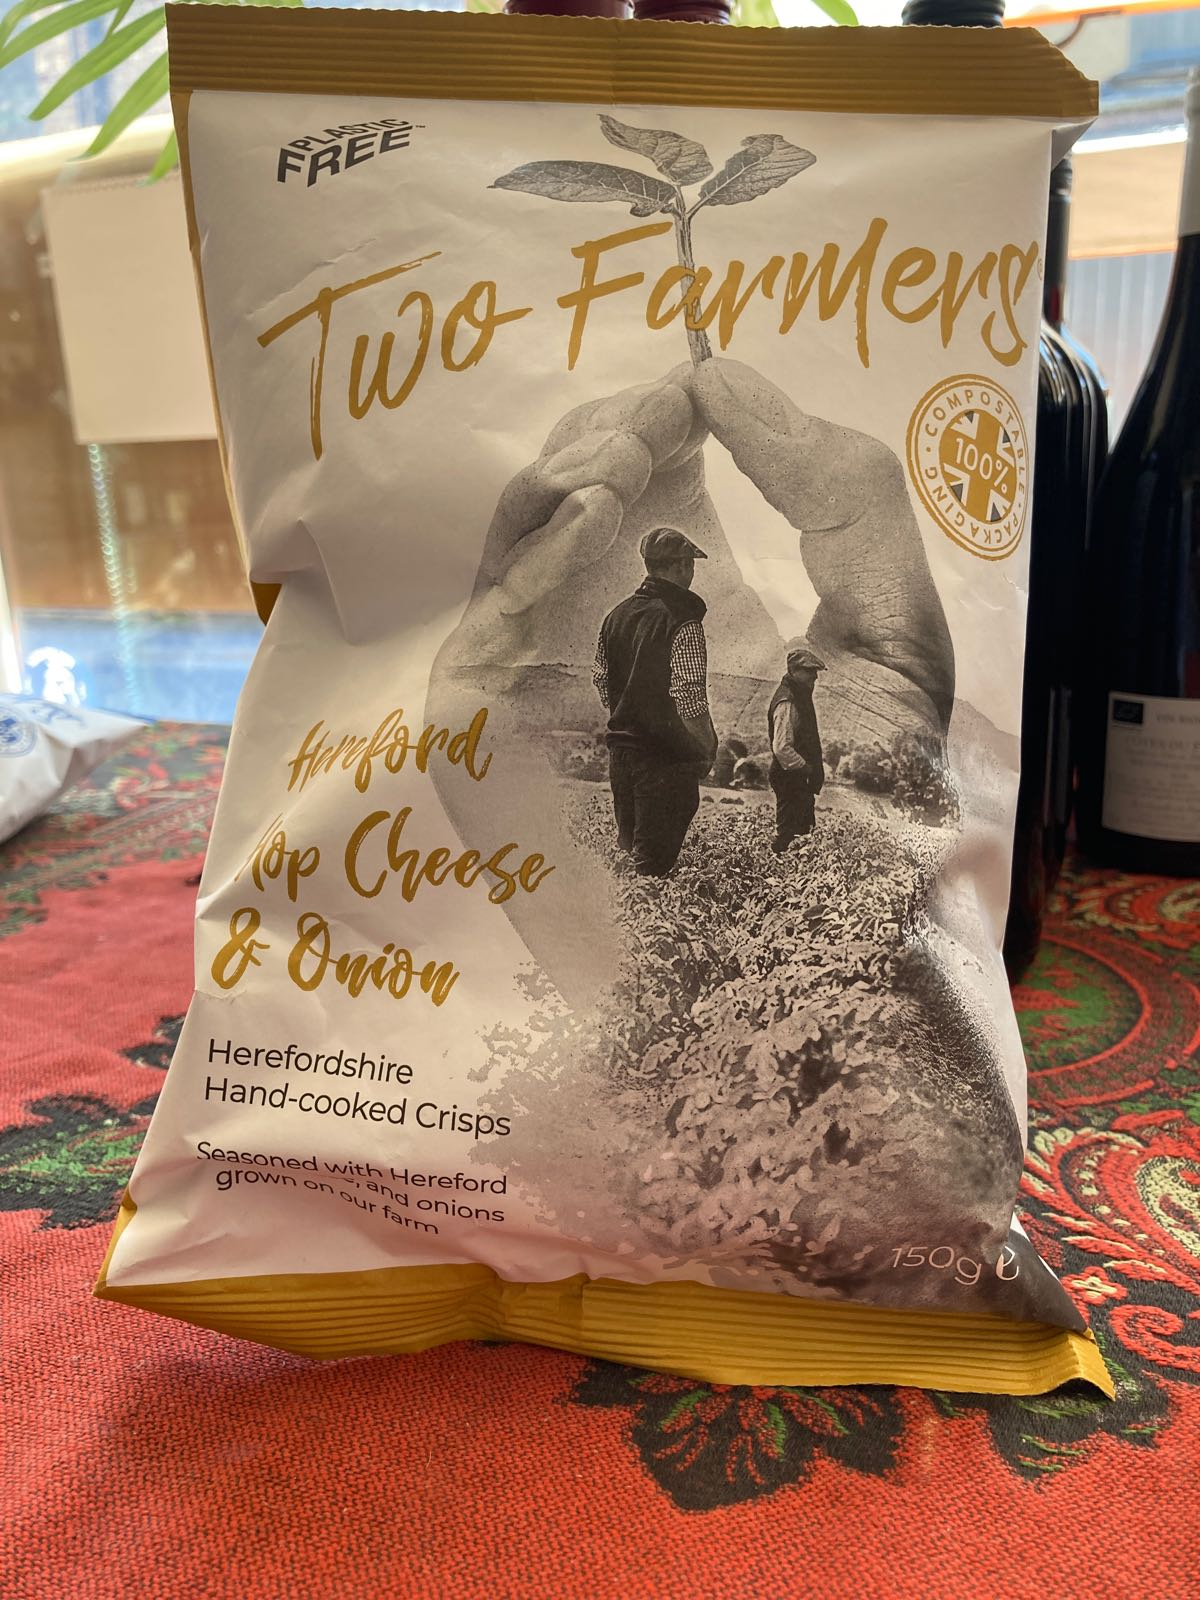 Two Farmers Crisps - Hereford Hop Cheese and Onion Crisps